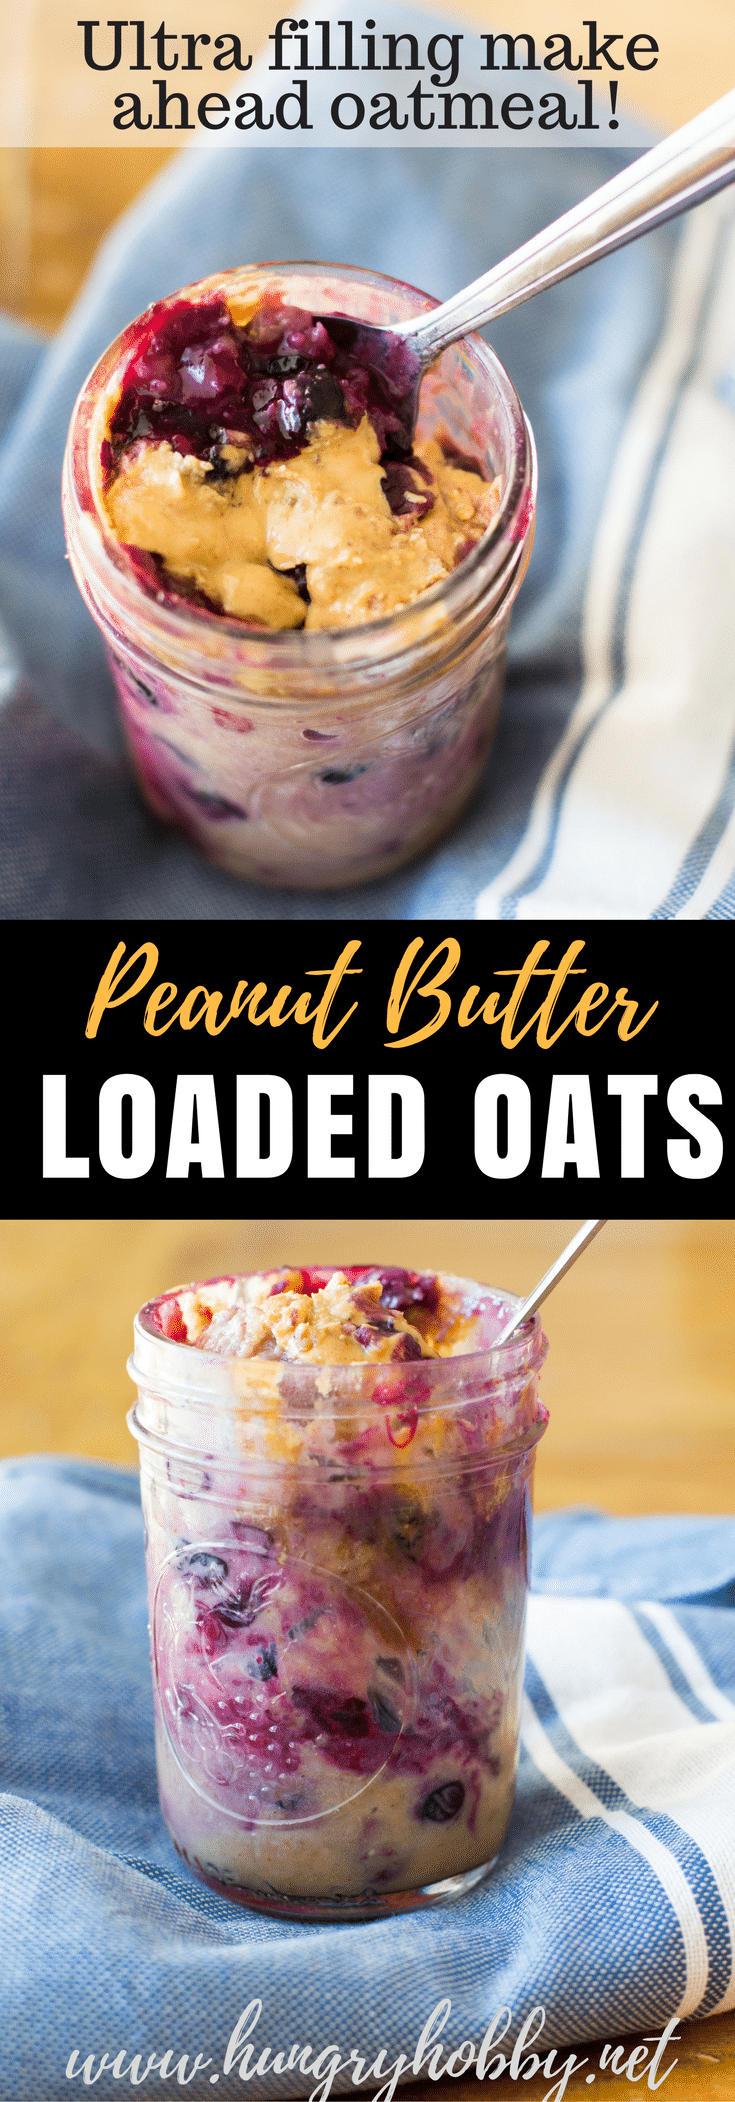 Warm bursting blueberries, drizzled with creamy peanut butter, and packed with protein, this is a bowl of oatmeal that will keep you full for hours!